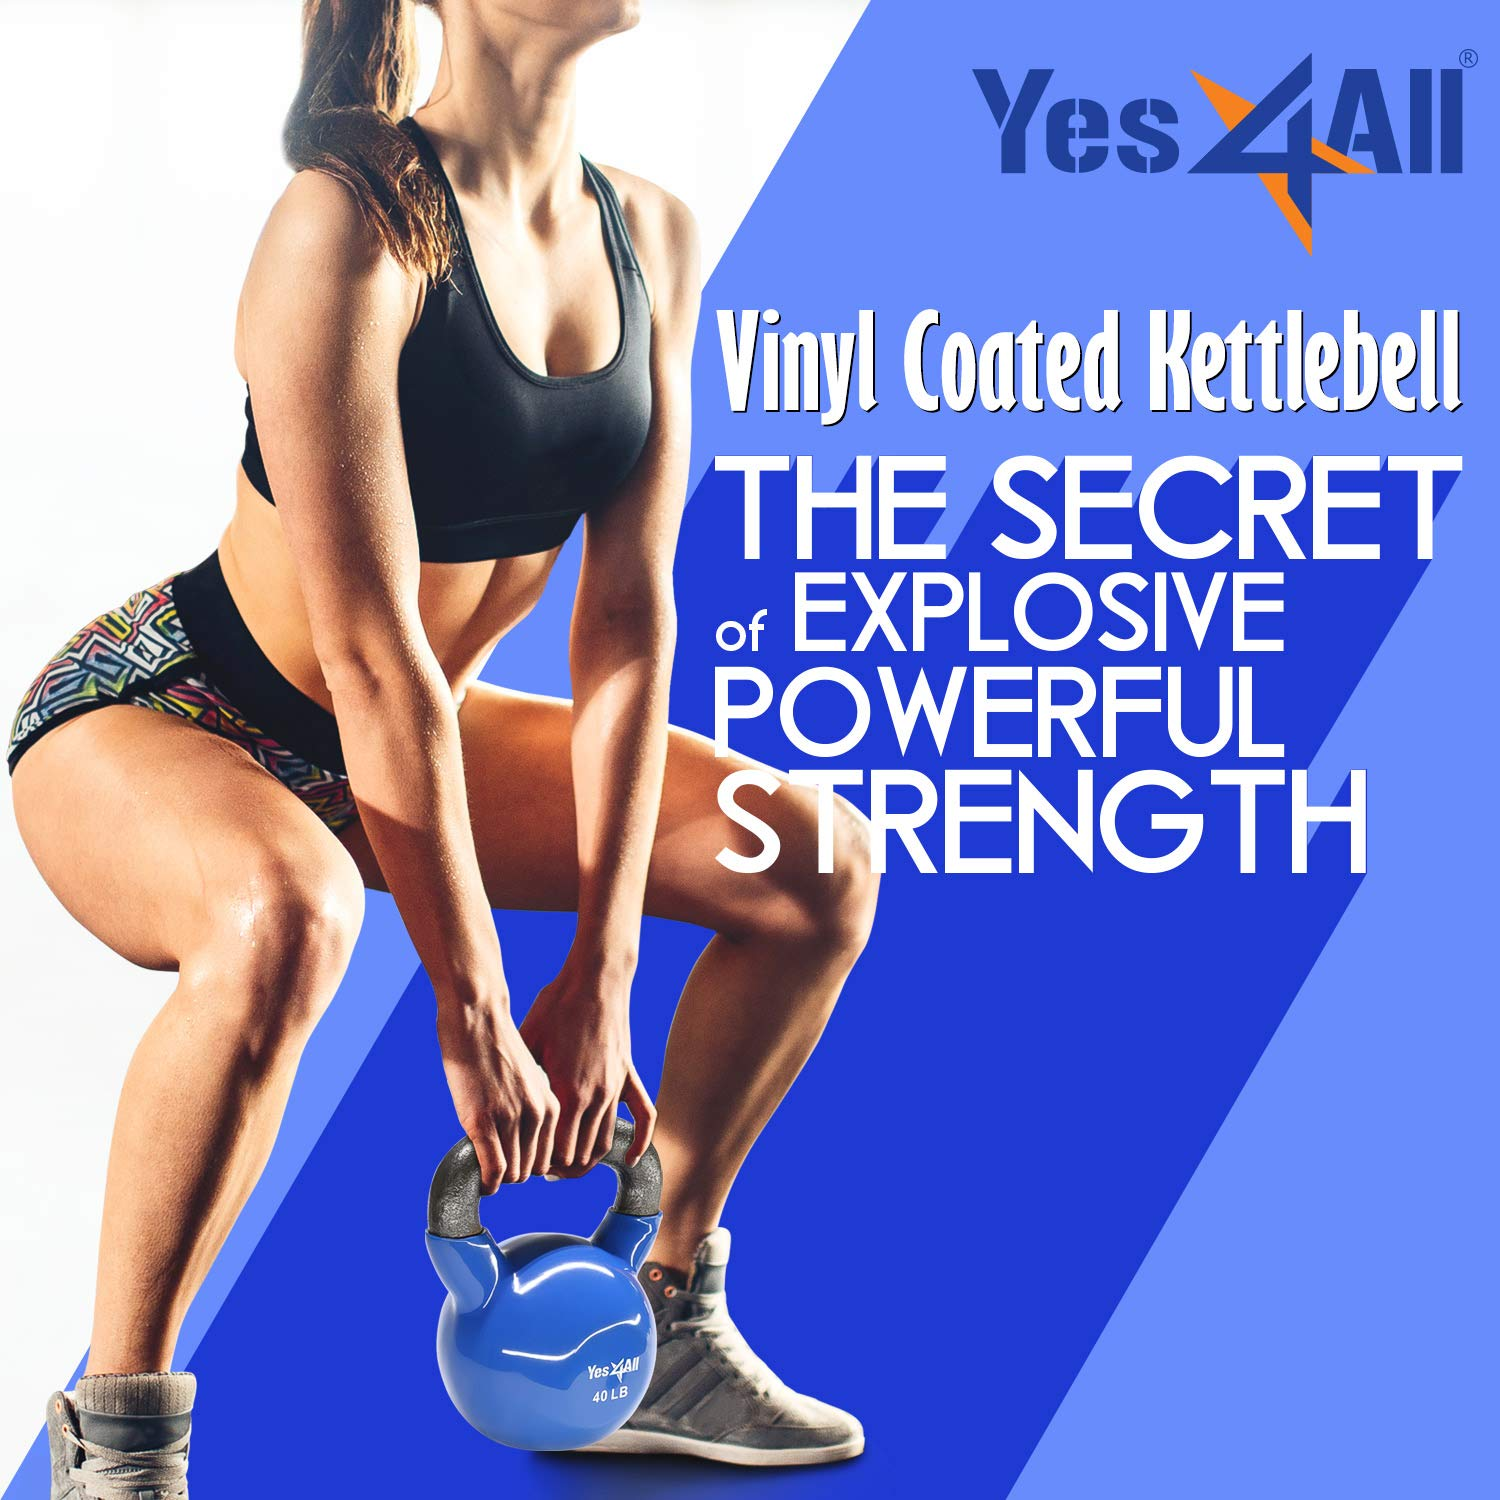 Yes4All Vinyl Coated Kettlebell Weights Set - Great for Full Body Workout and Strength Training - Vinyl Kettlebell 35 lbs by Yes4All (Image #1)